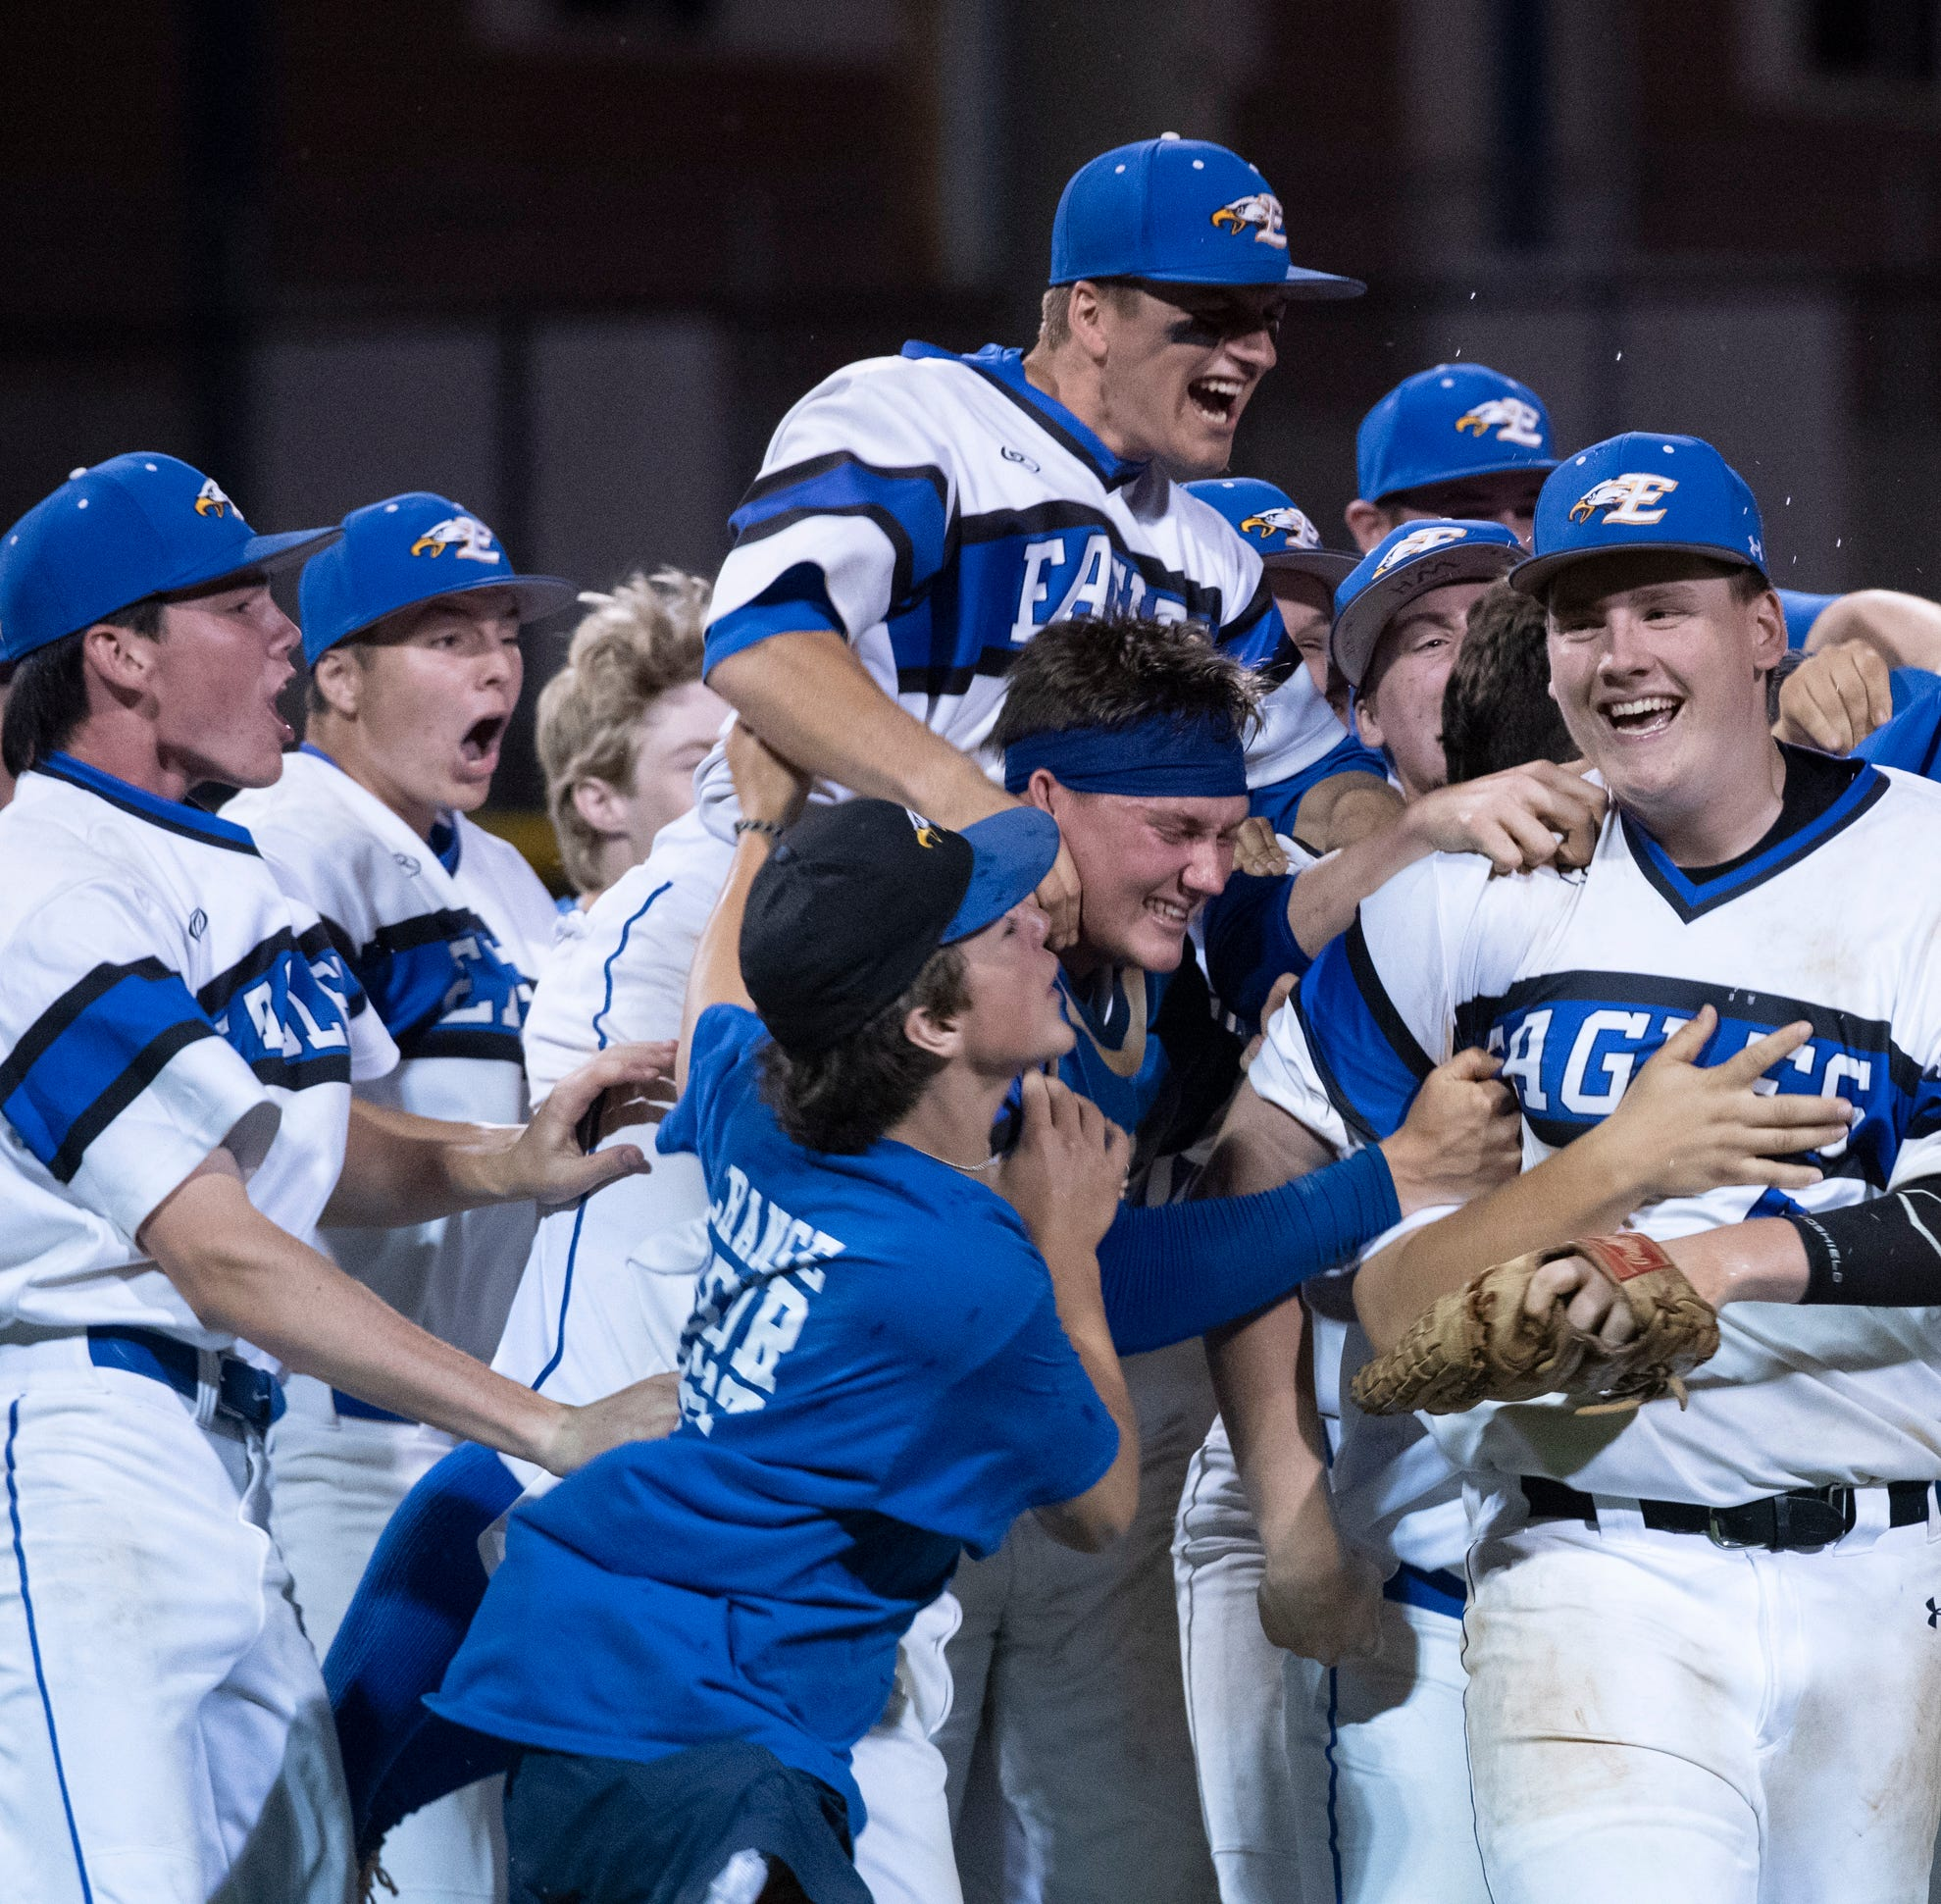 Eastside baseball defeats BHP to advance to the state championship; Midland Valley next